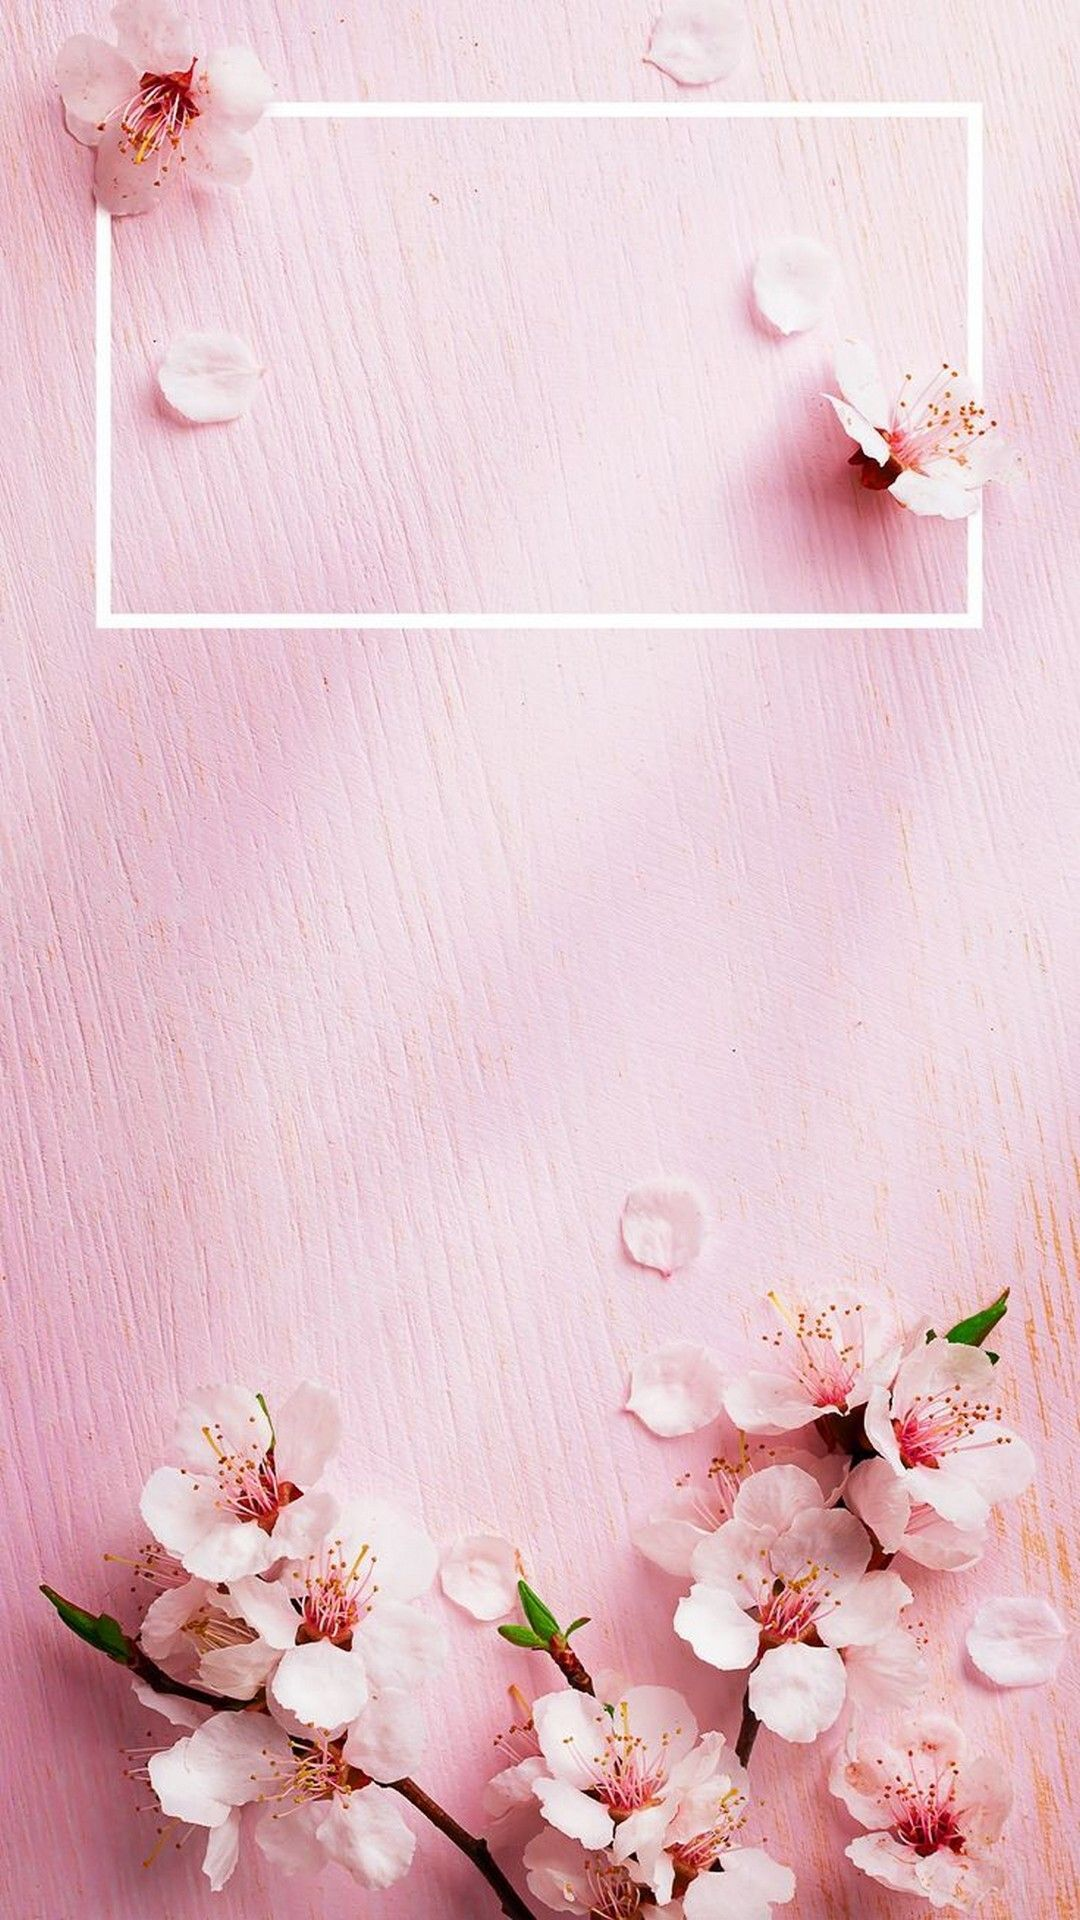 Aesthetic Spring 3d Flower Iphone Wallpapers Wallpaper Cave